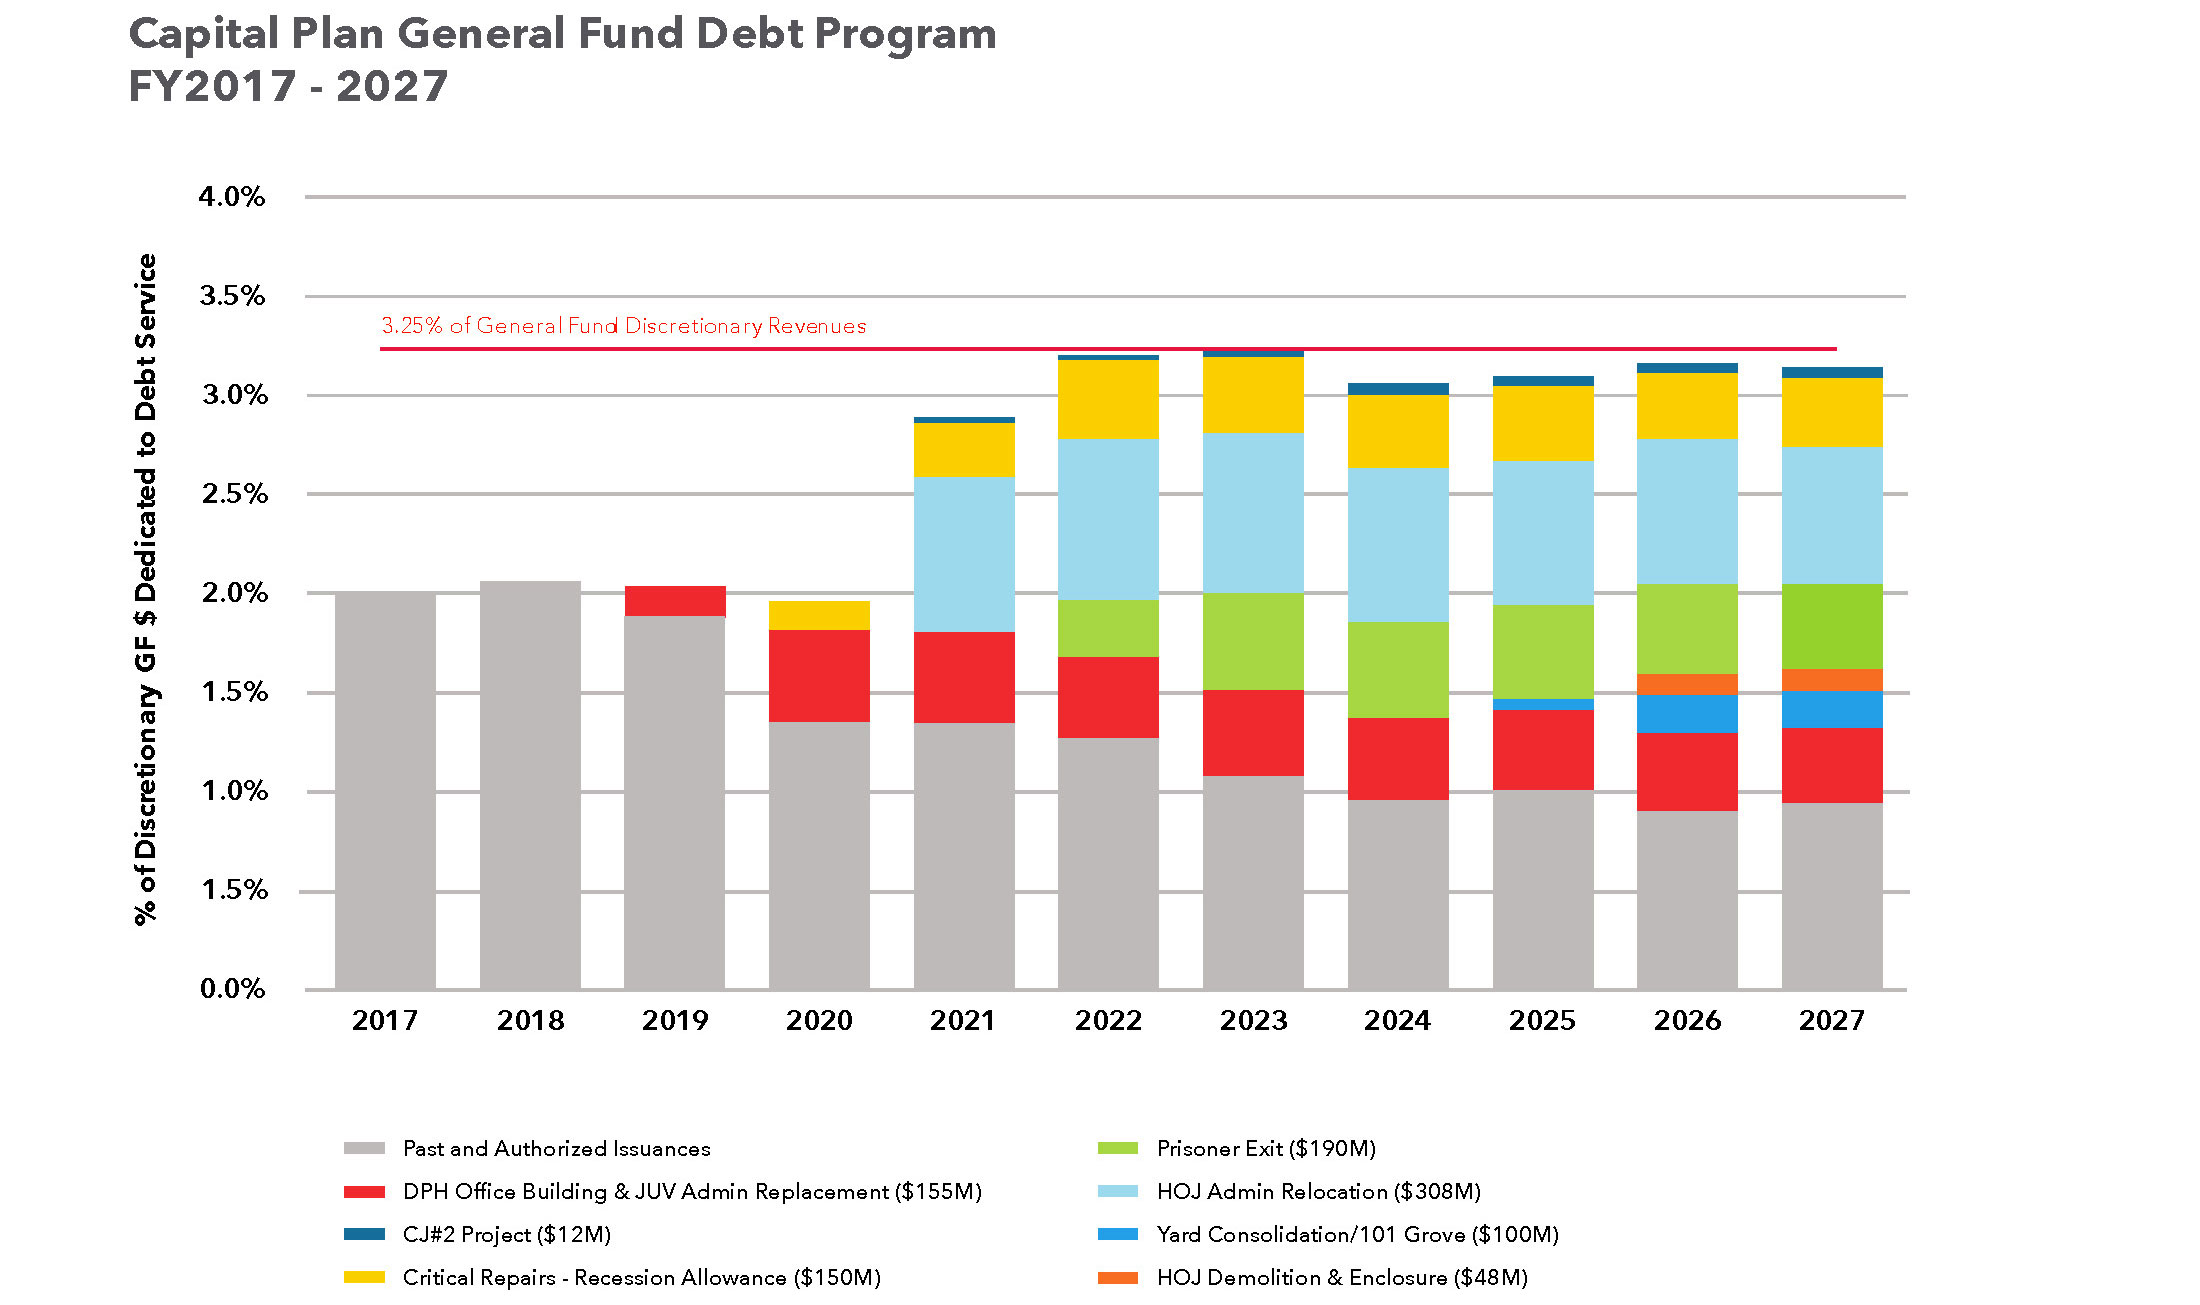 Capital Plan General Fund Debt Program